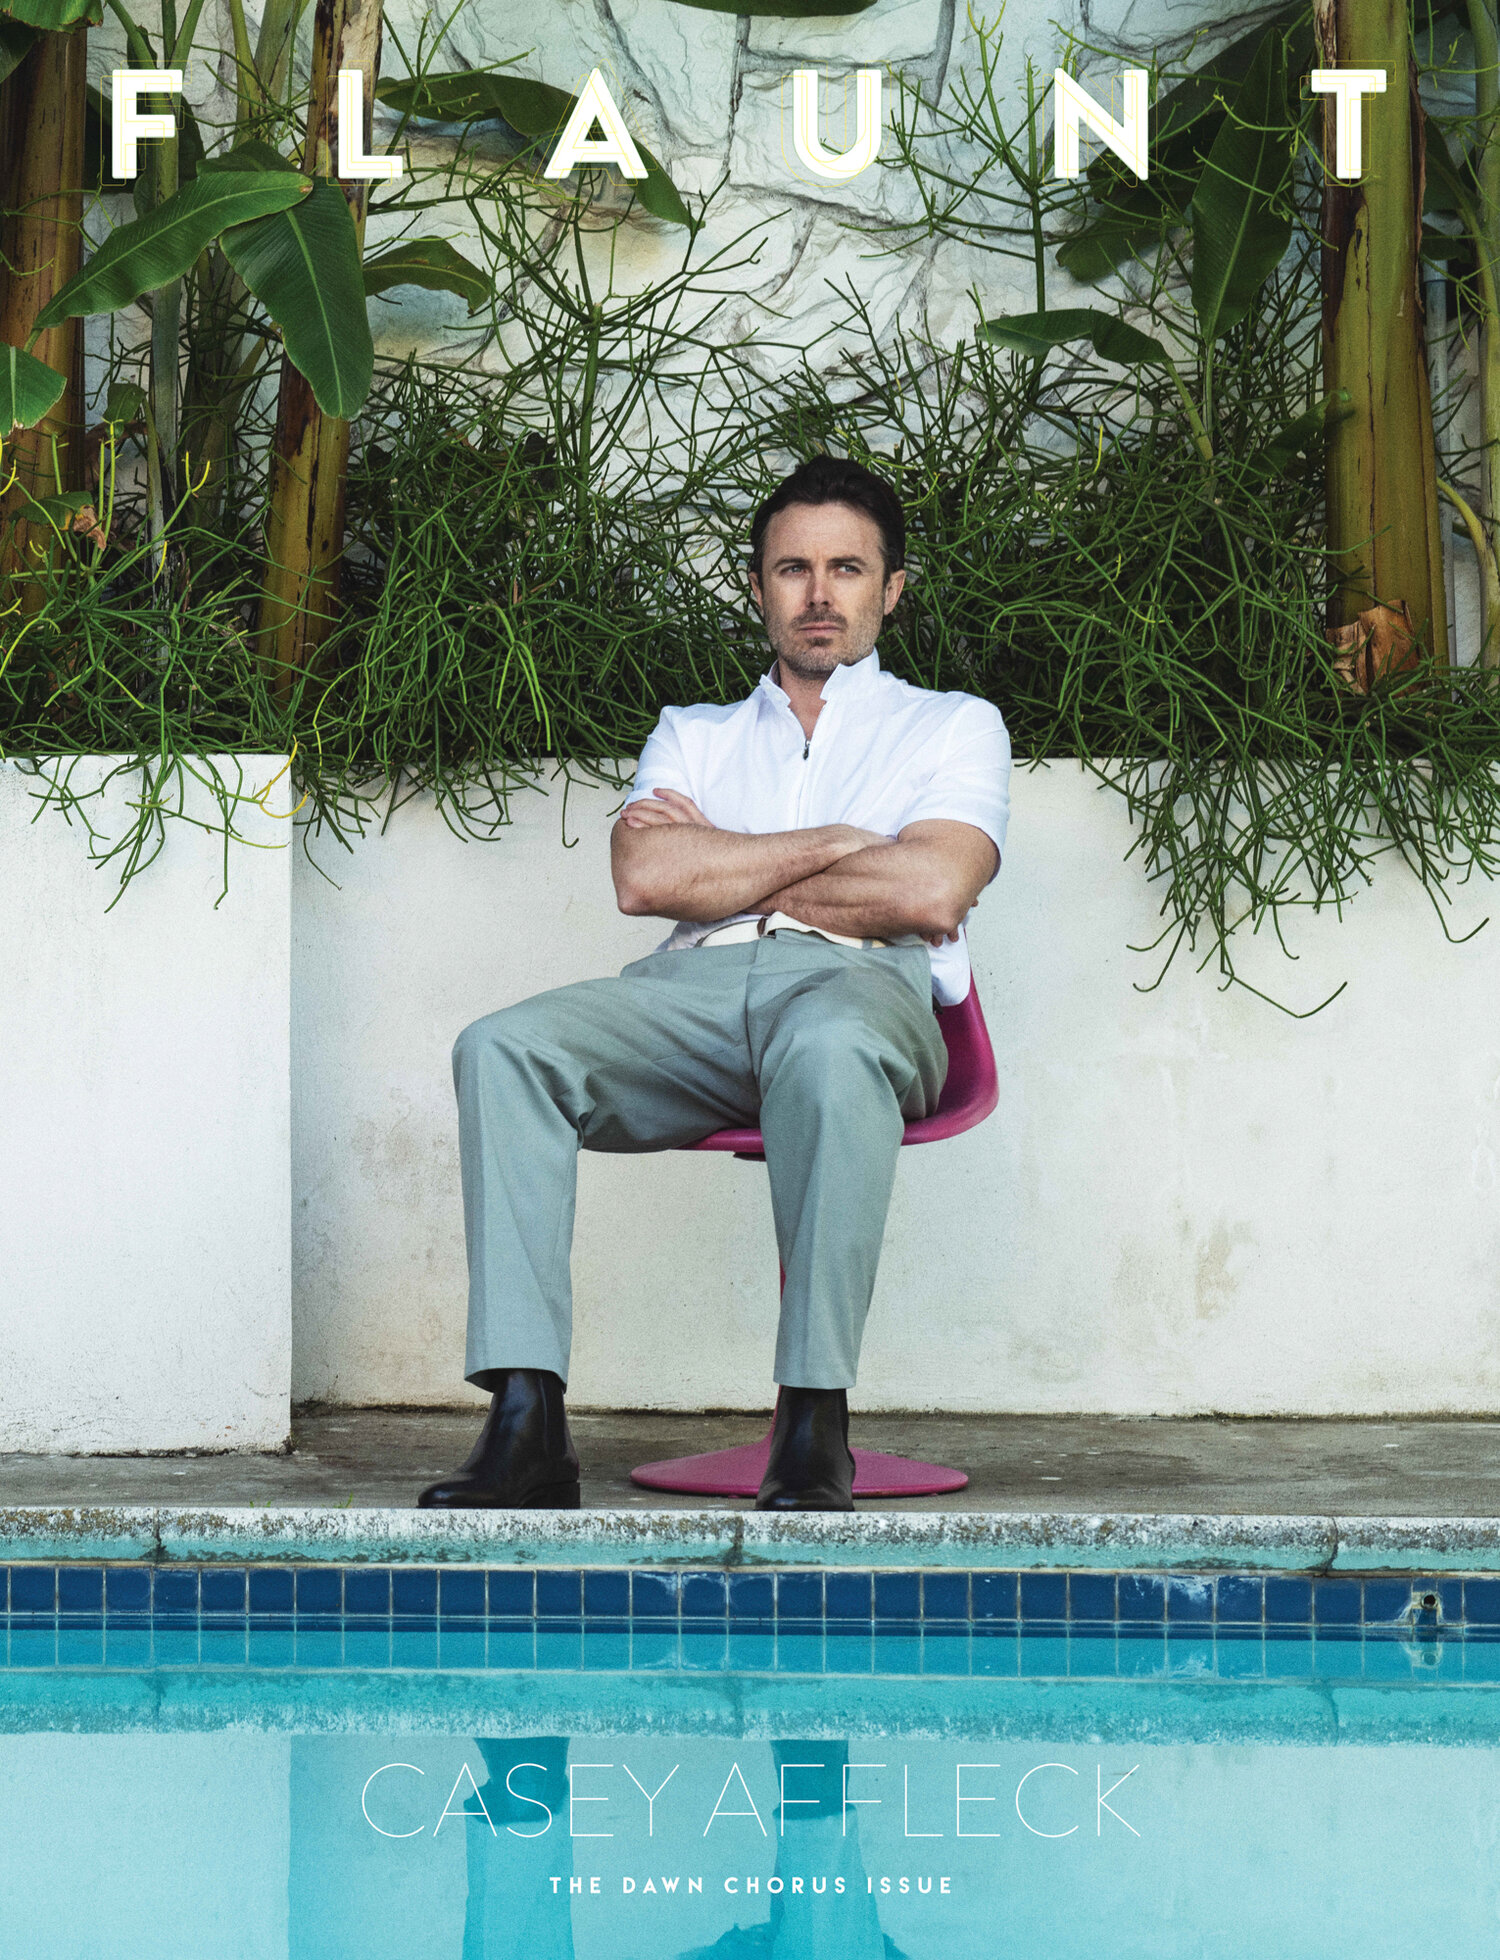 Casey Affleck covers Flaunt Magazine Issue 174 by Ian Morrison